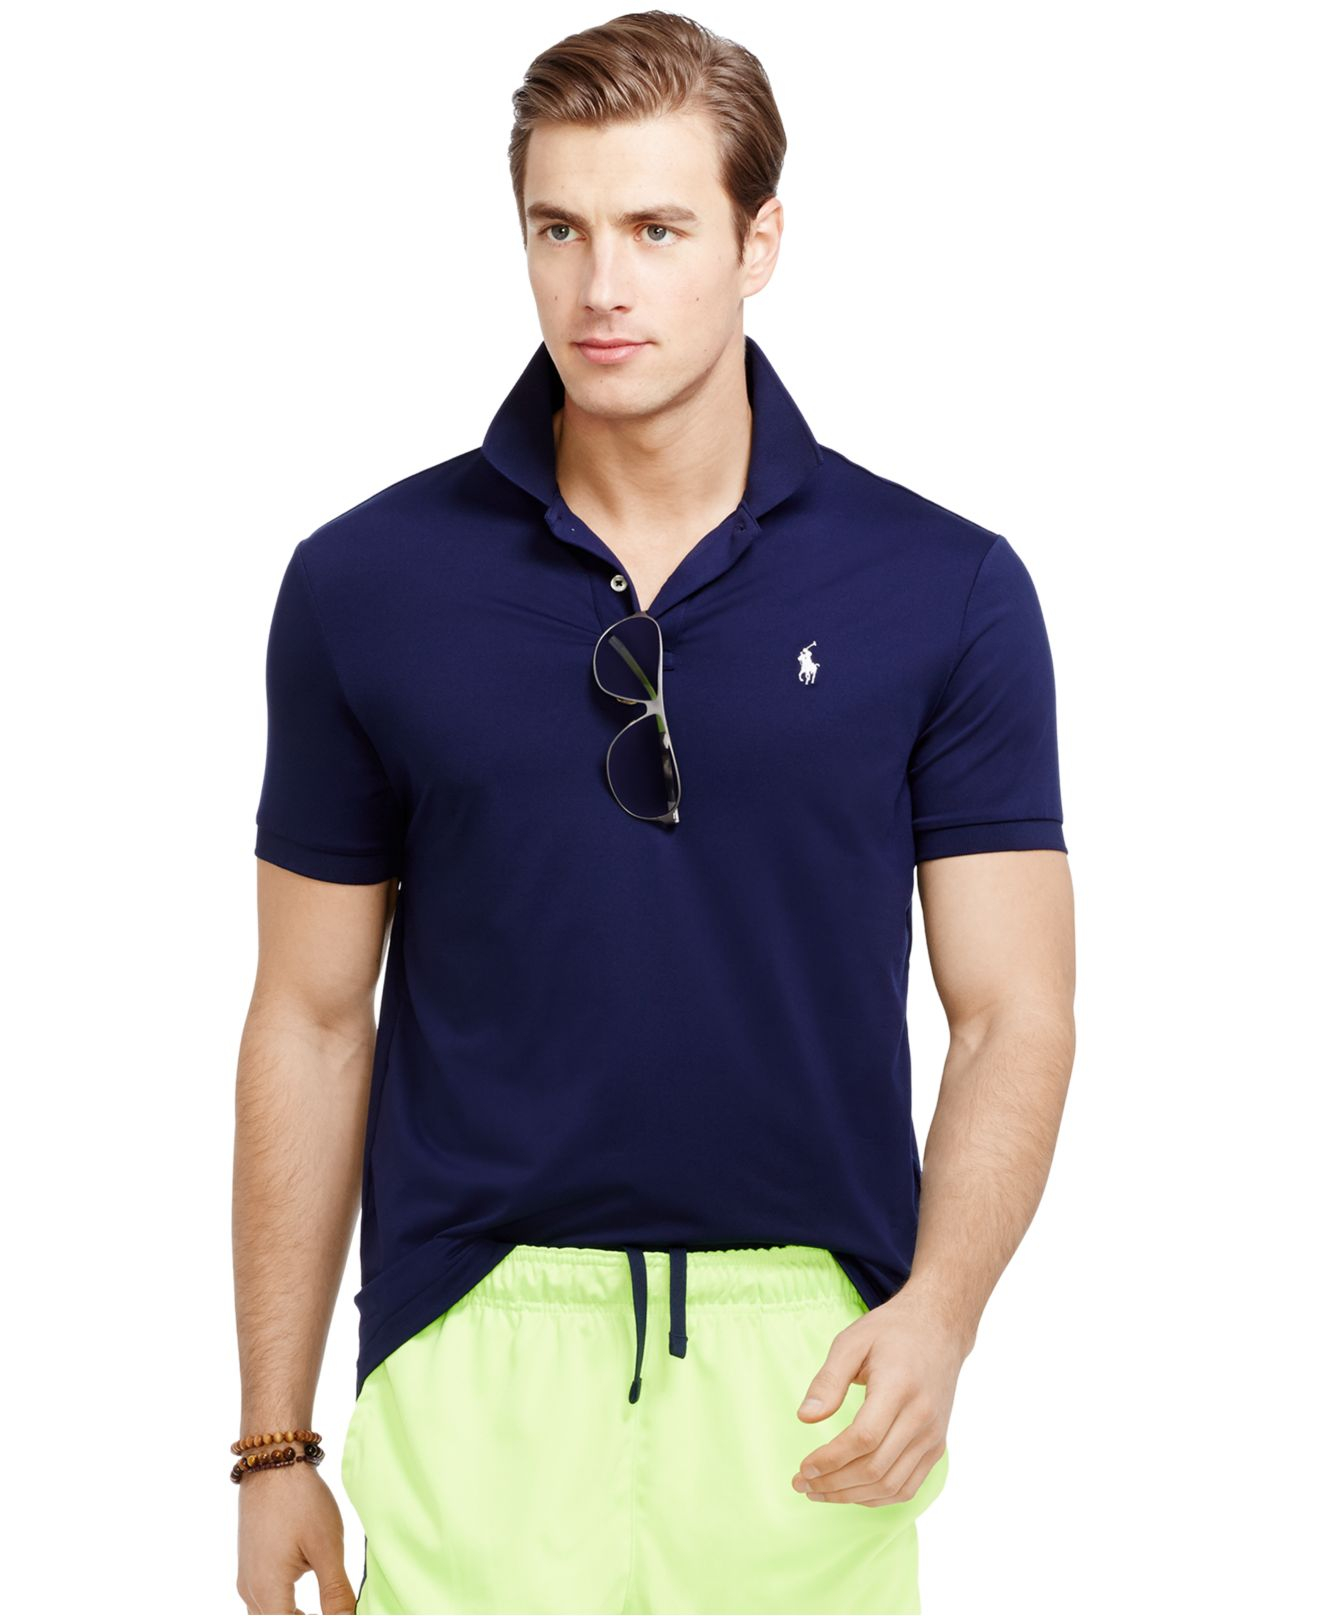 lyst polo ralph lauren performance polo shirt in blue for men